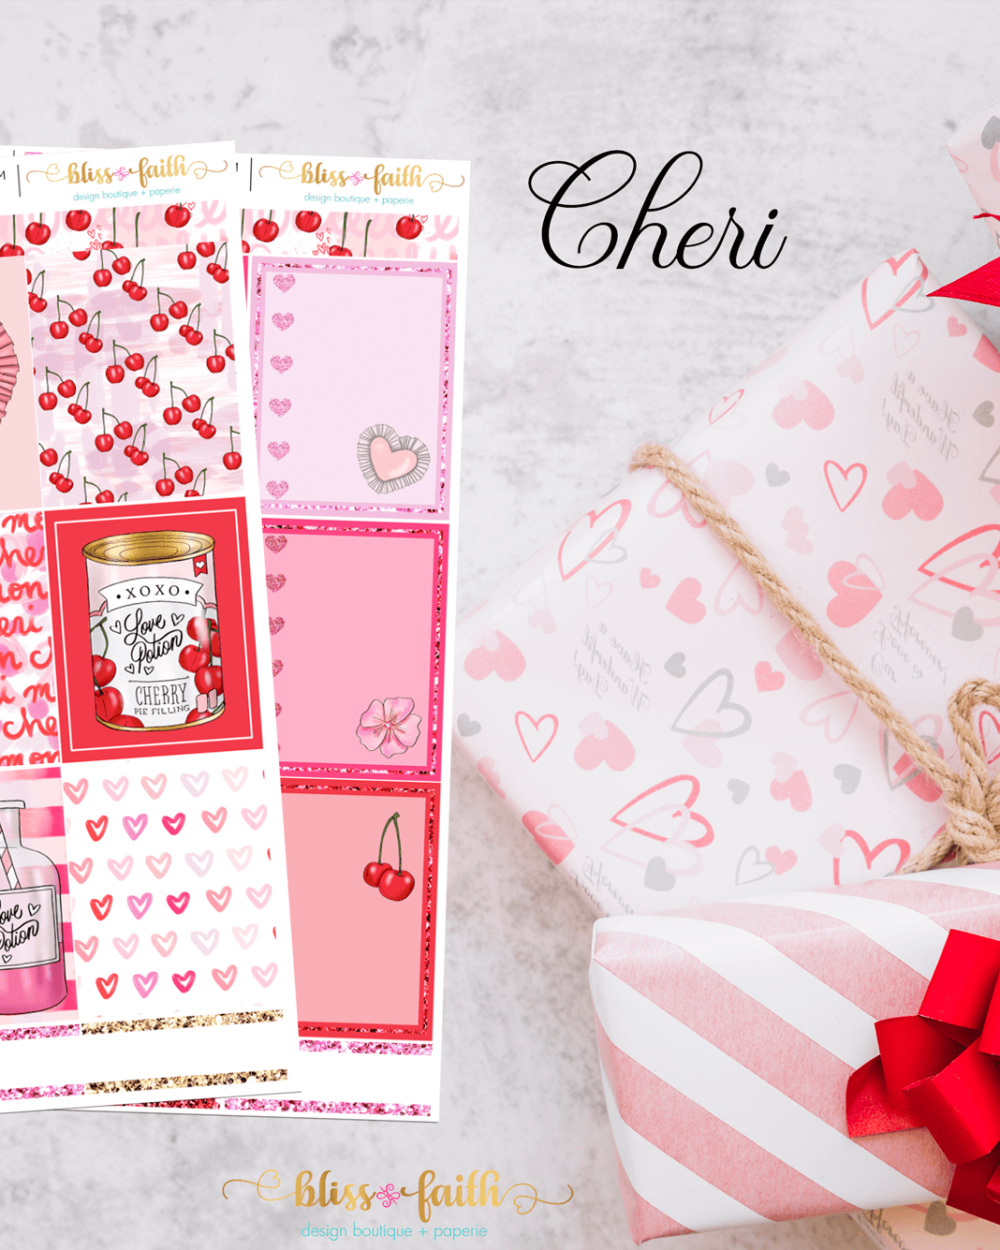 Cheri Weekly Sticker Kit | blissandfaith.com